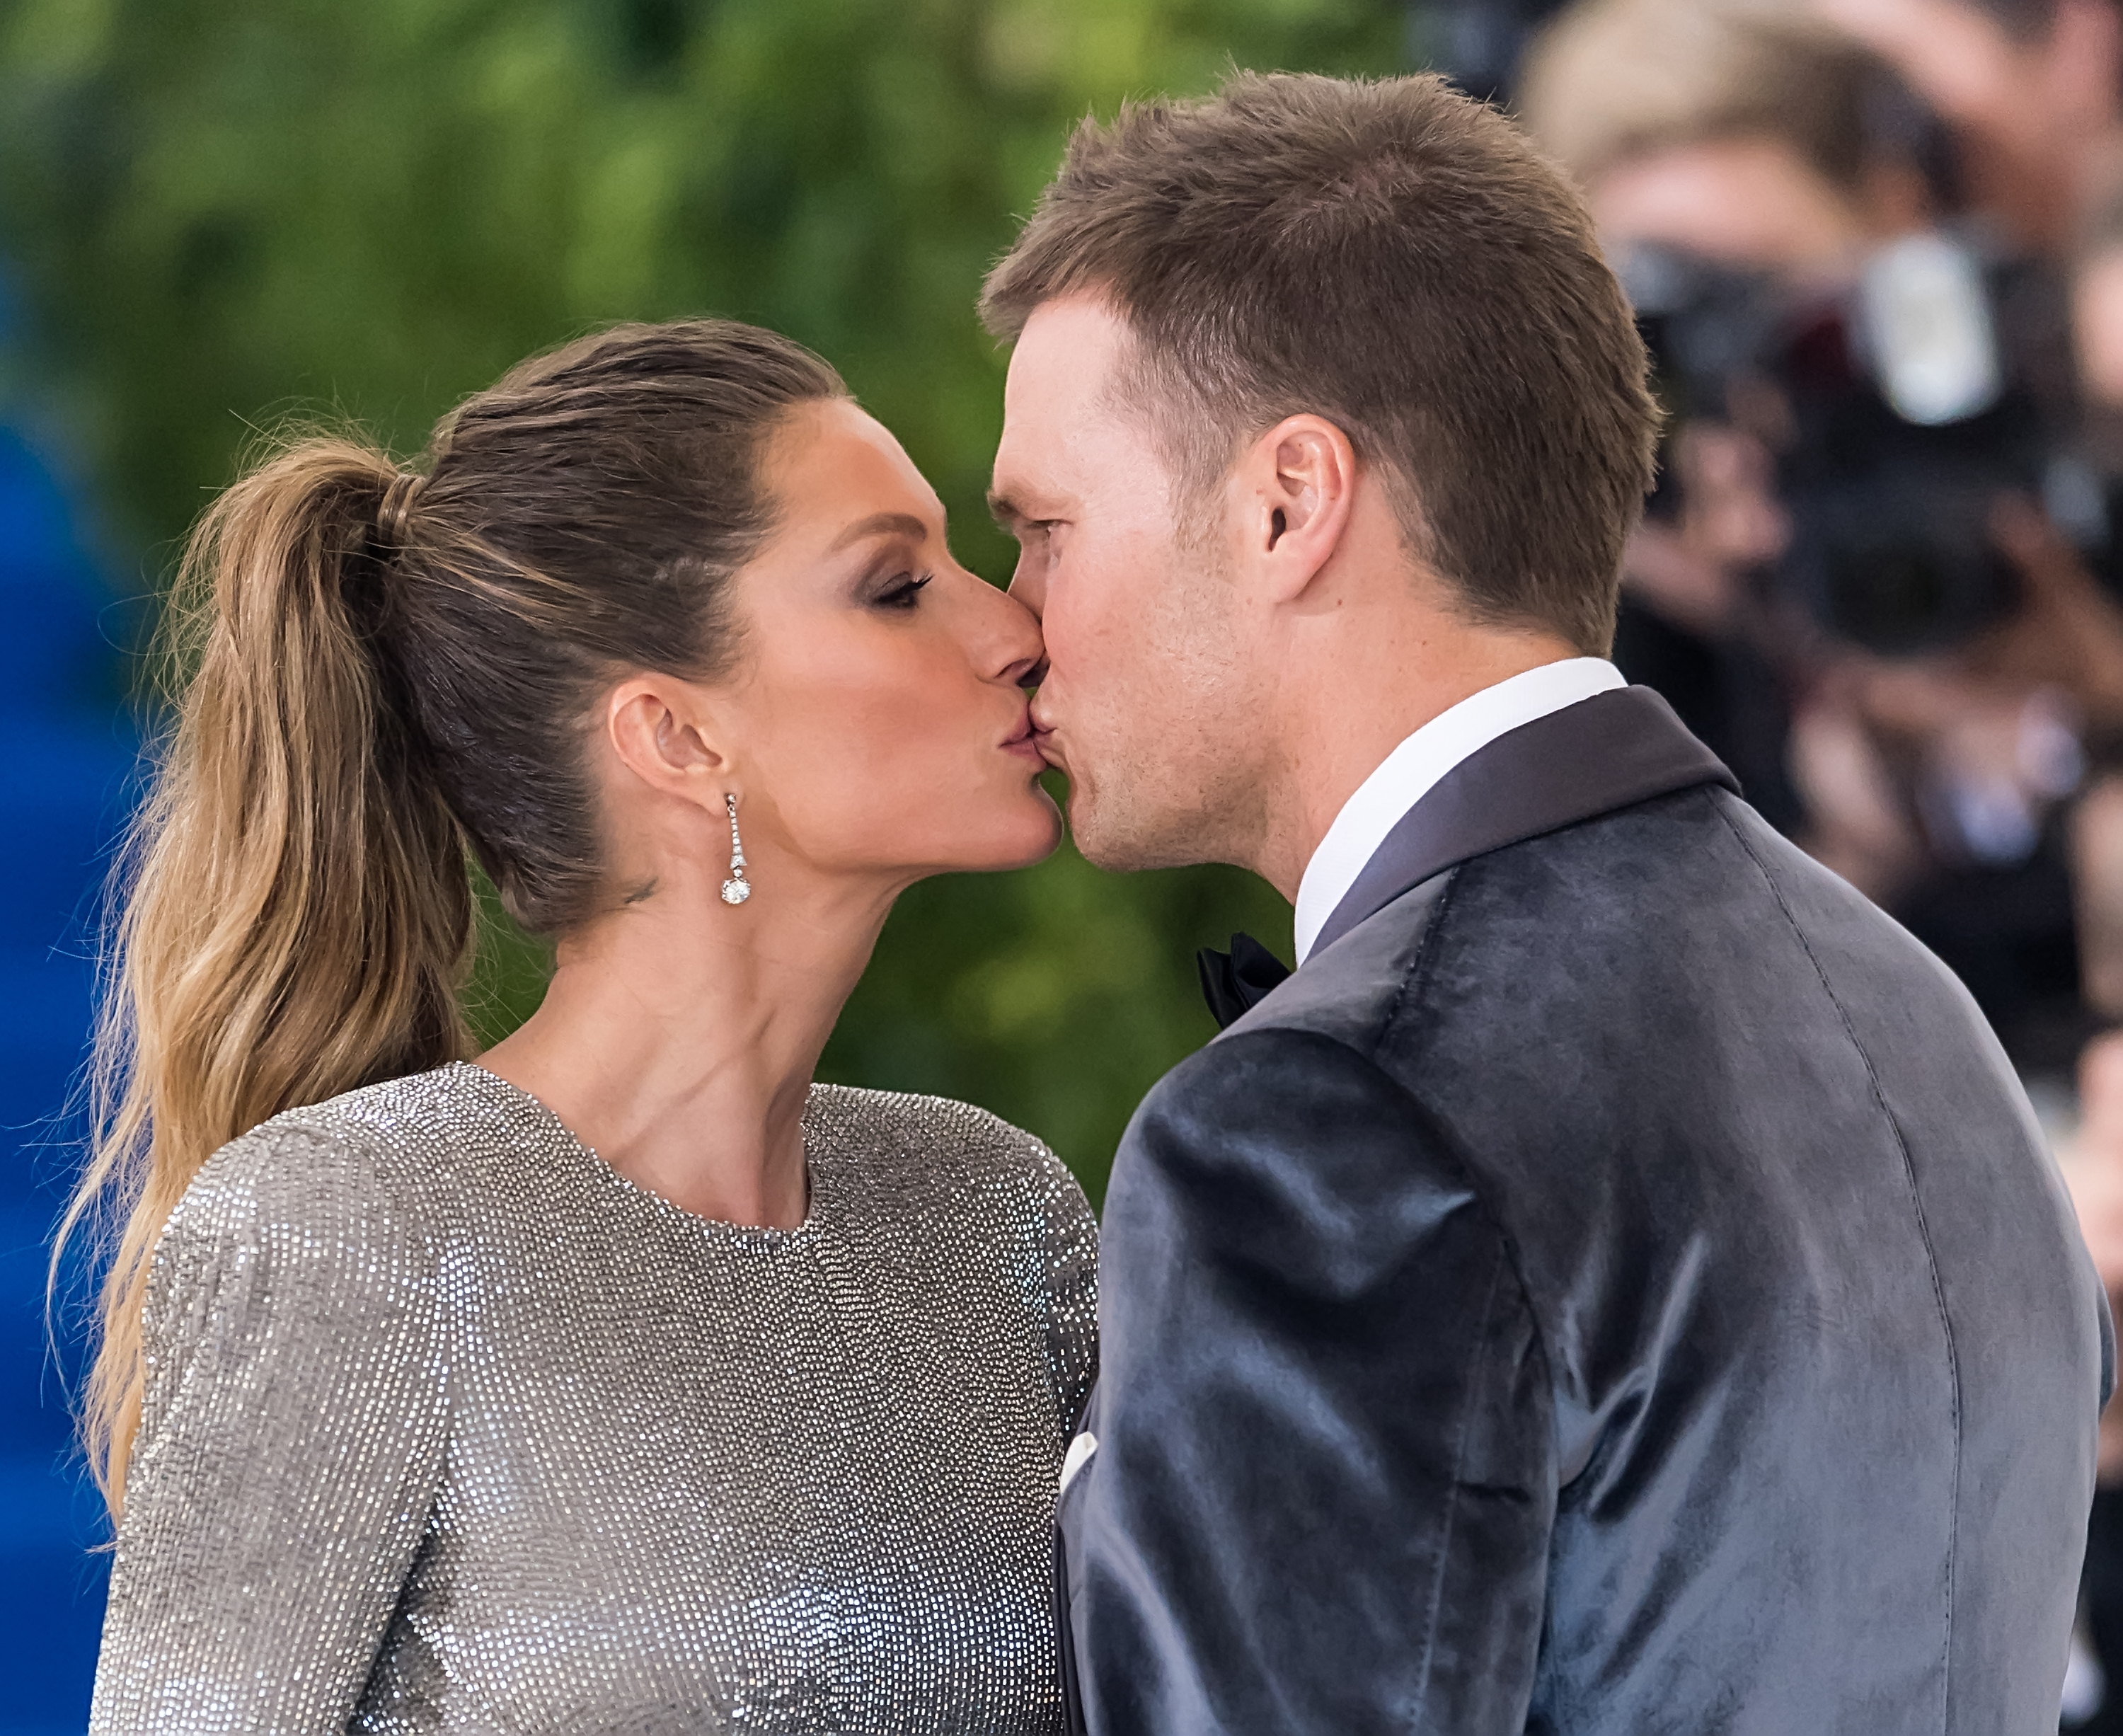 NEW YORK, NY - MAY 01:  Model Gisele Bundchen and Football quarterback Tom Brady are seen at the 'Rei Kawakubo/Comme des Garcons: Art Of The In-Between' Costume Institute Gala at Metropolitan Museum of Art on May 1, 2017 in New York City.  (Photo by Gilbert Carrasquillo/GC Images)